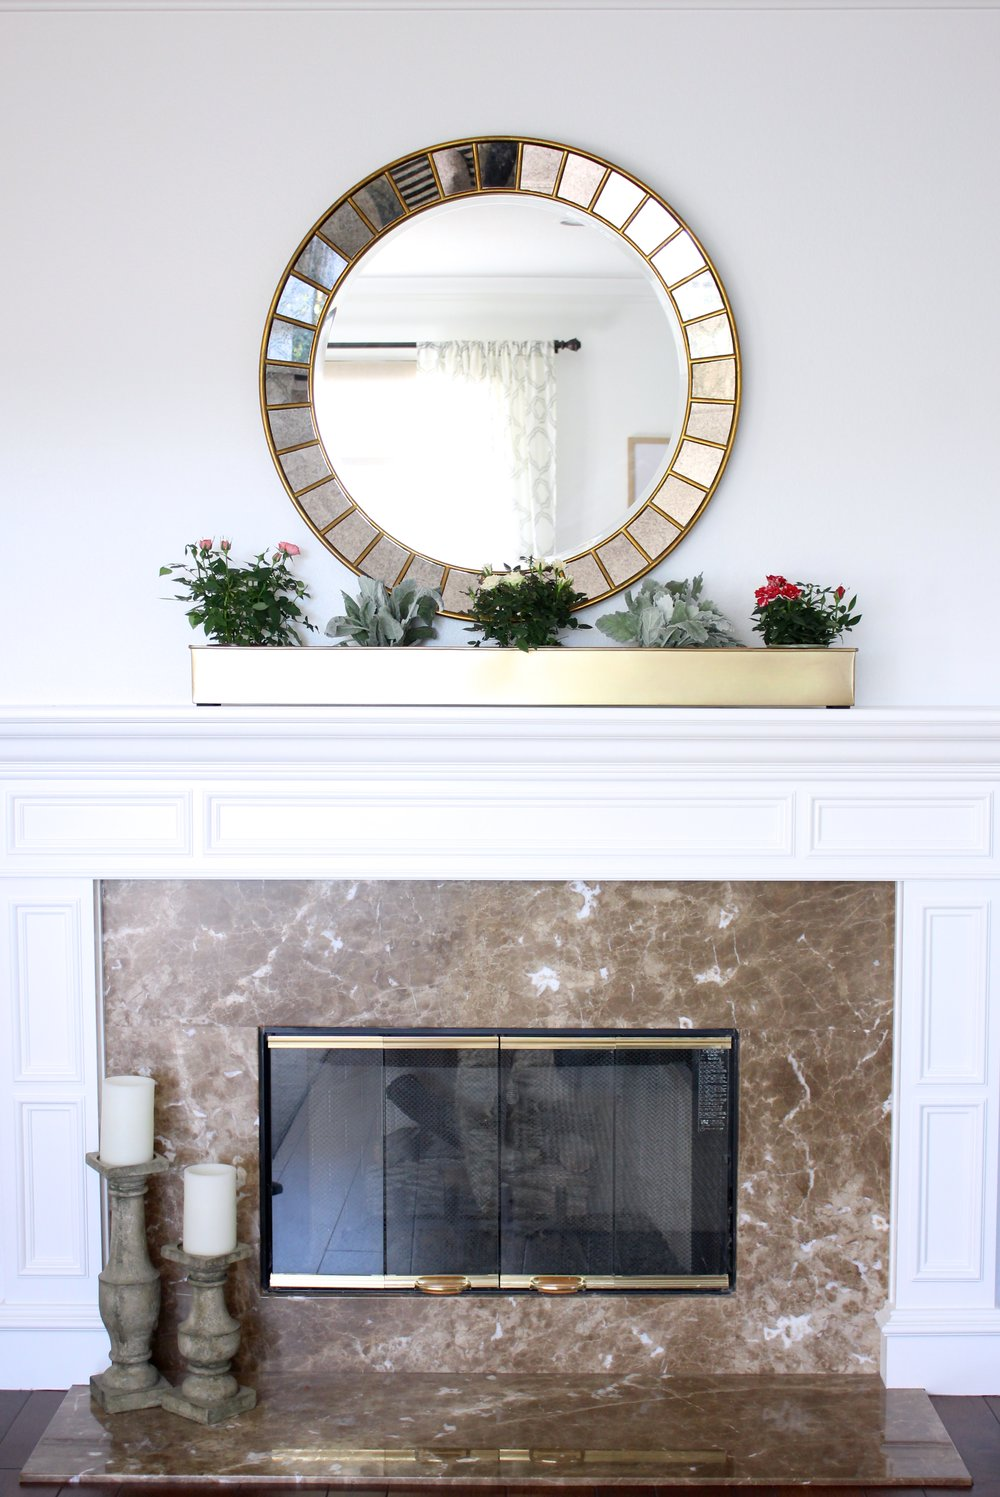 RosewoodInteriors_SterlingGlennProject6.jpg